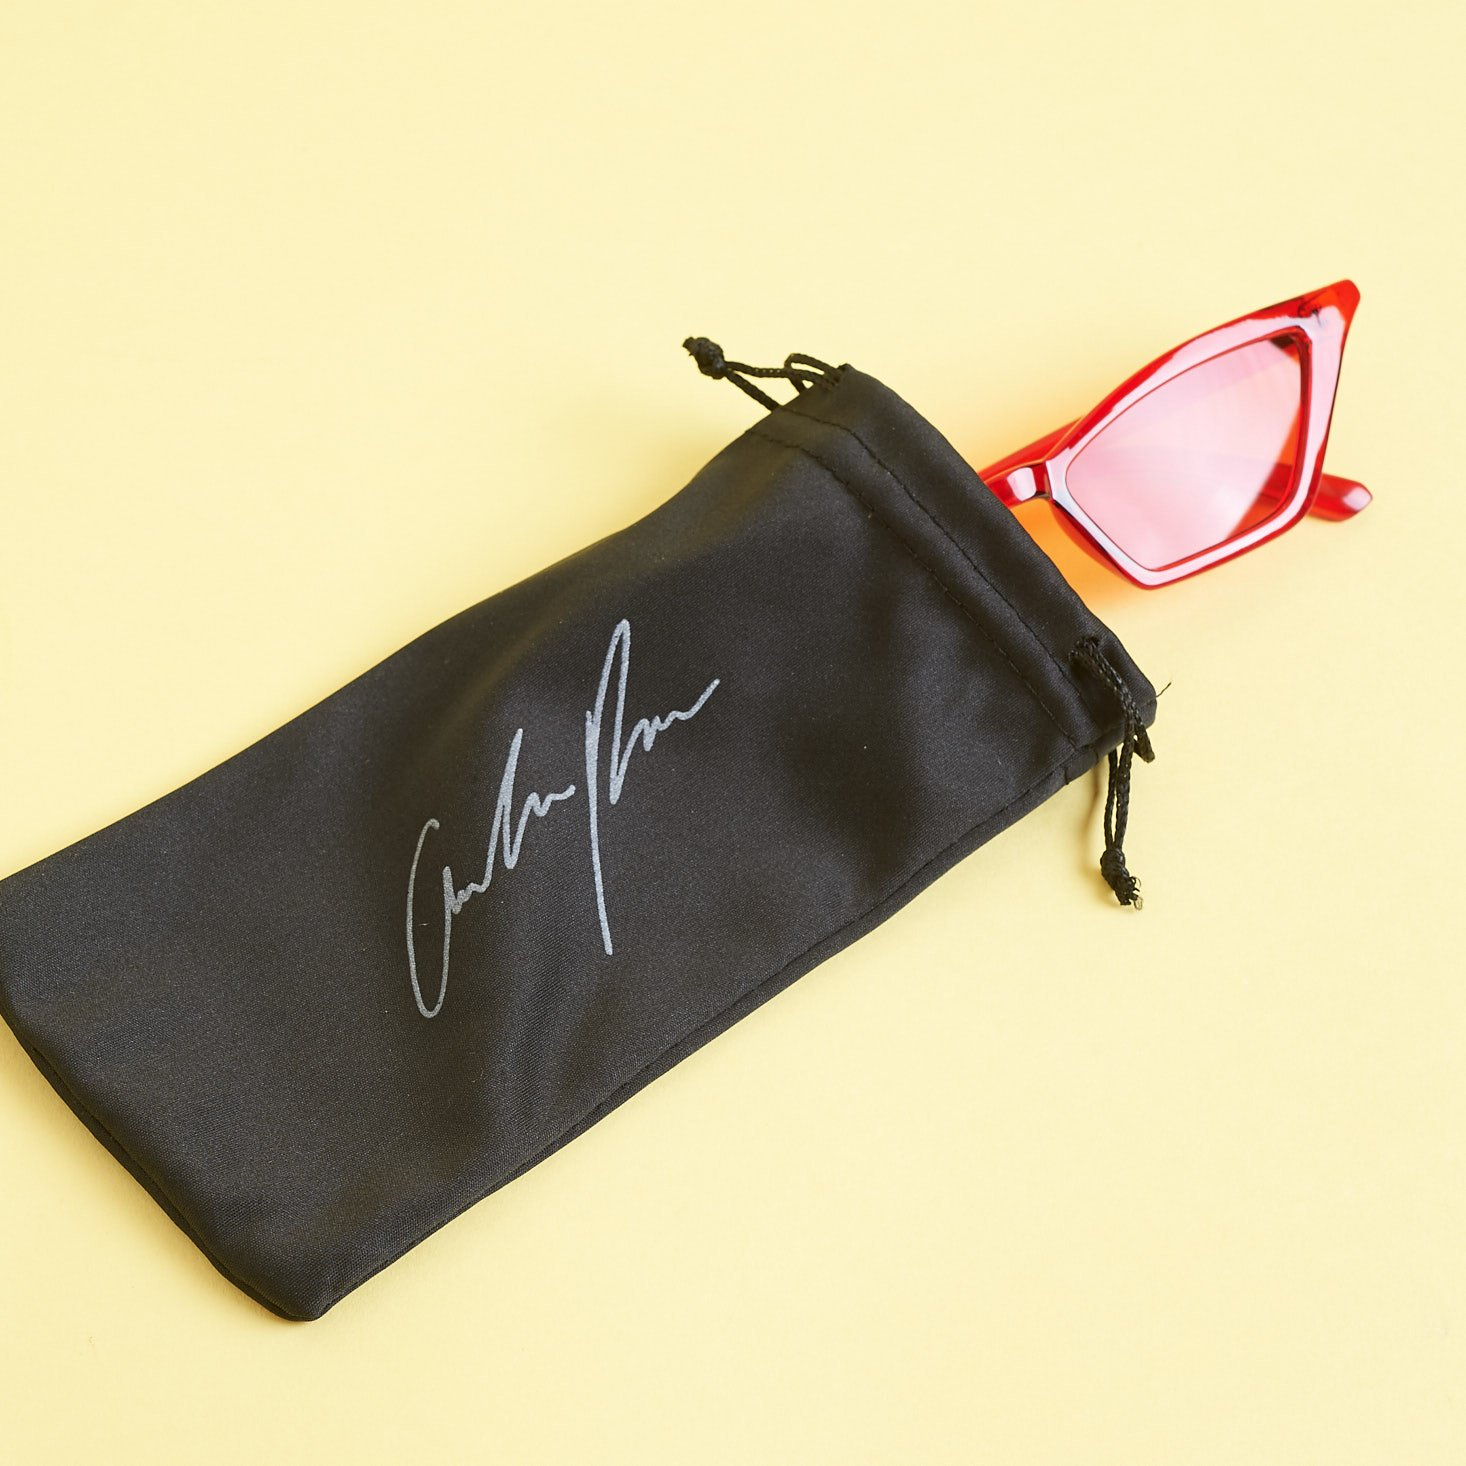 Amber Rose Sunglasses coming out of black pouch